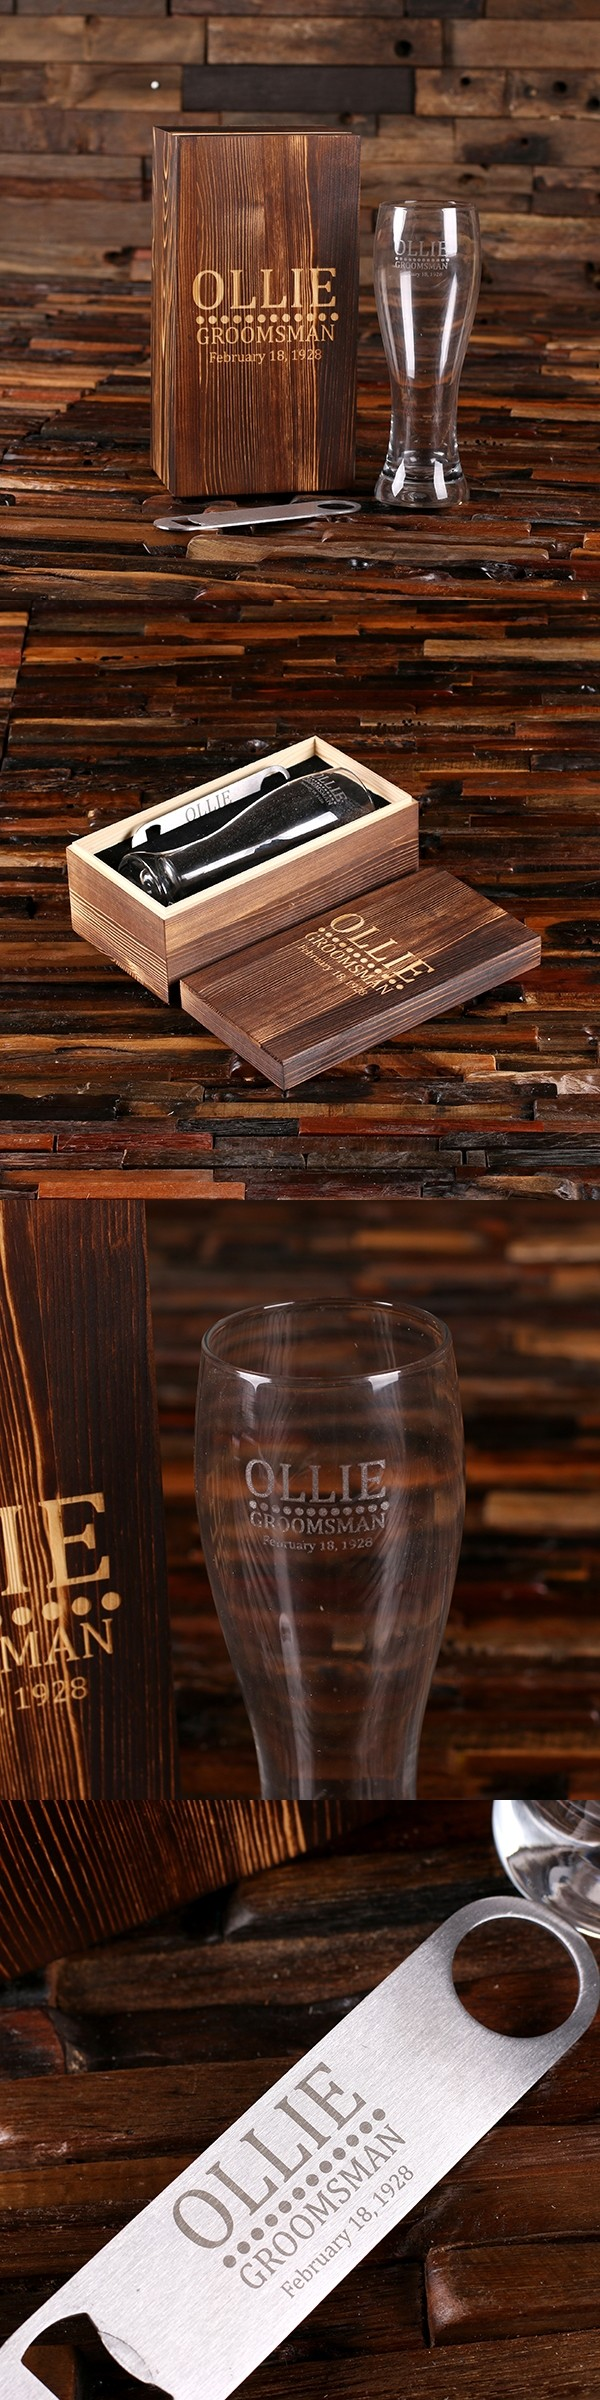 Personalized Pilsner Beer Glass and Bottle Opener in Engraved Wood Box